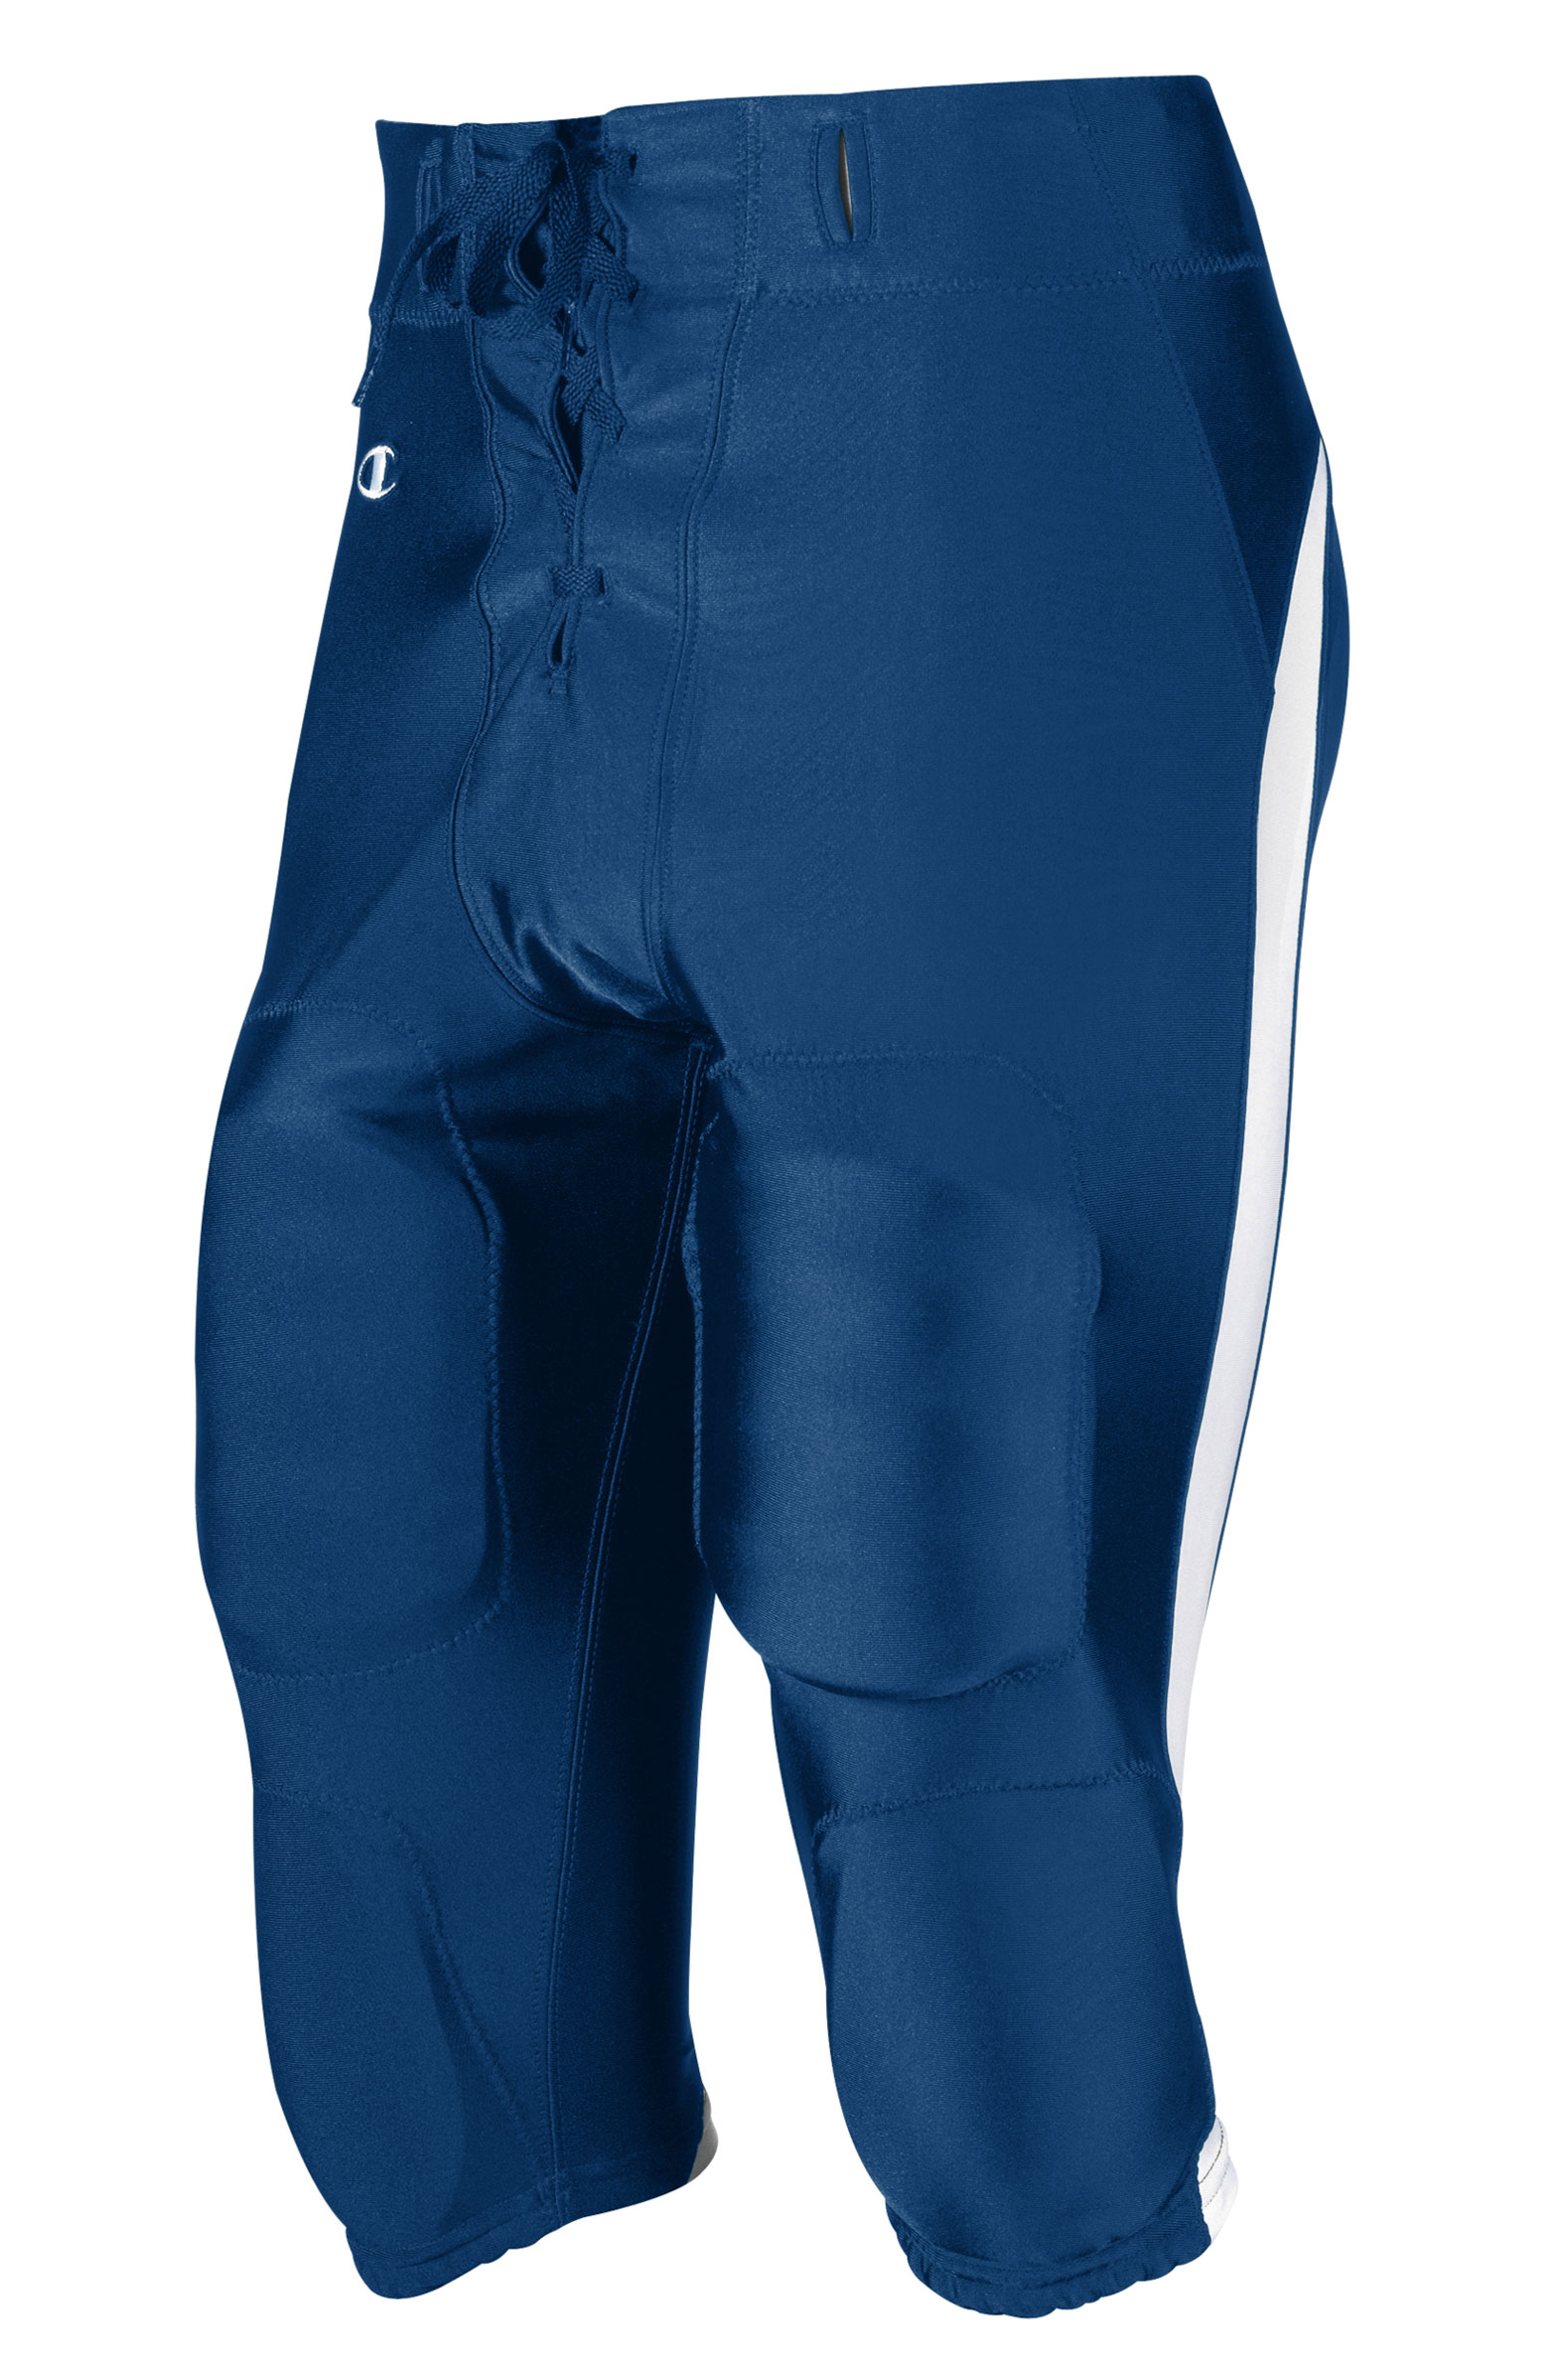 Adult Champion Challenger Football Game Pant